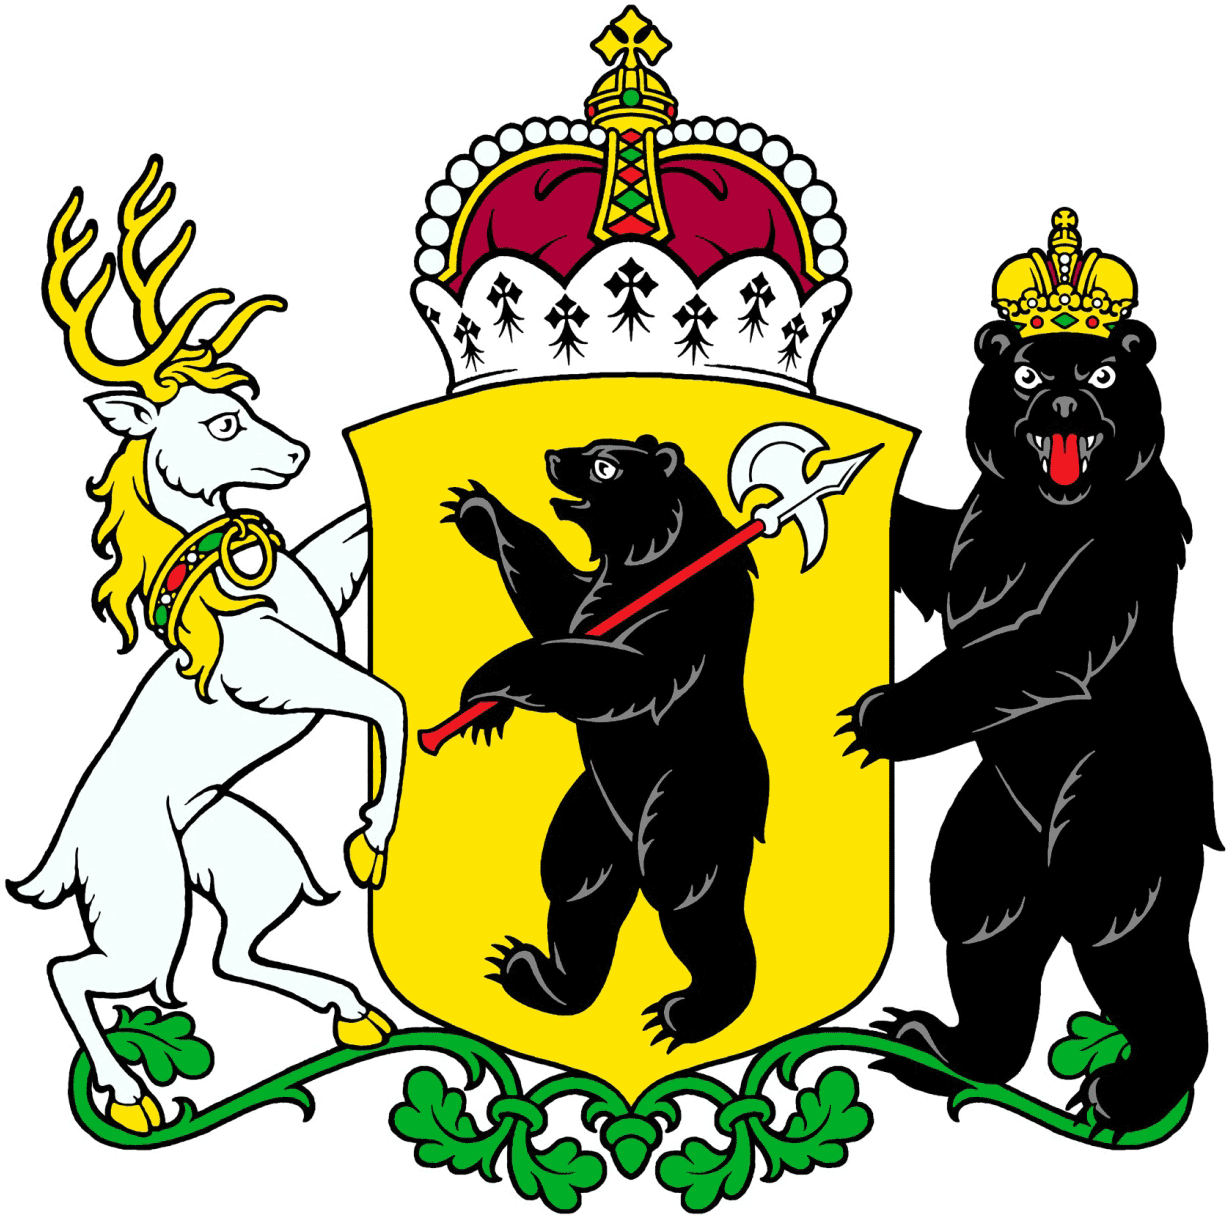 File:Coat of arms of Yaroslavl Oblast.png - Wikimedia Commons